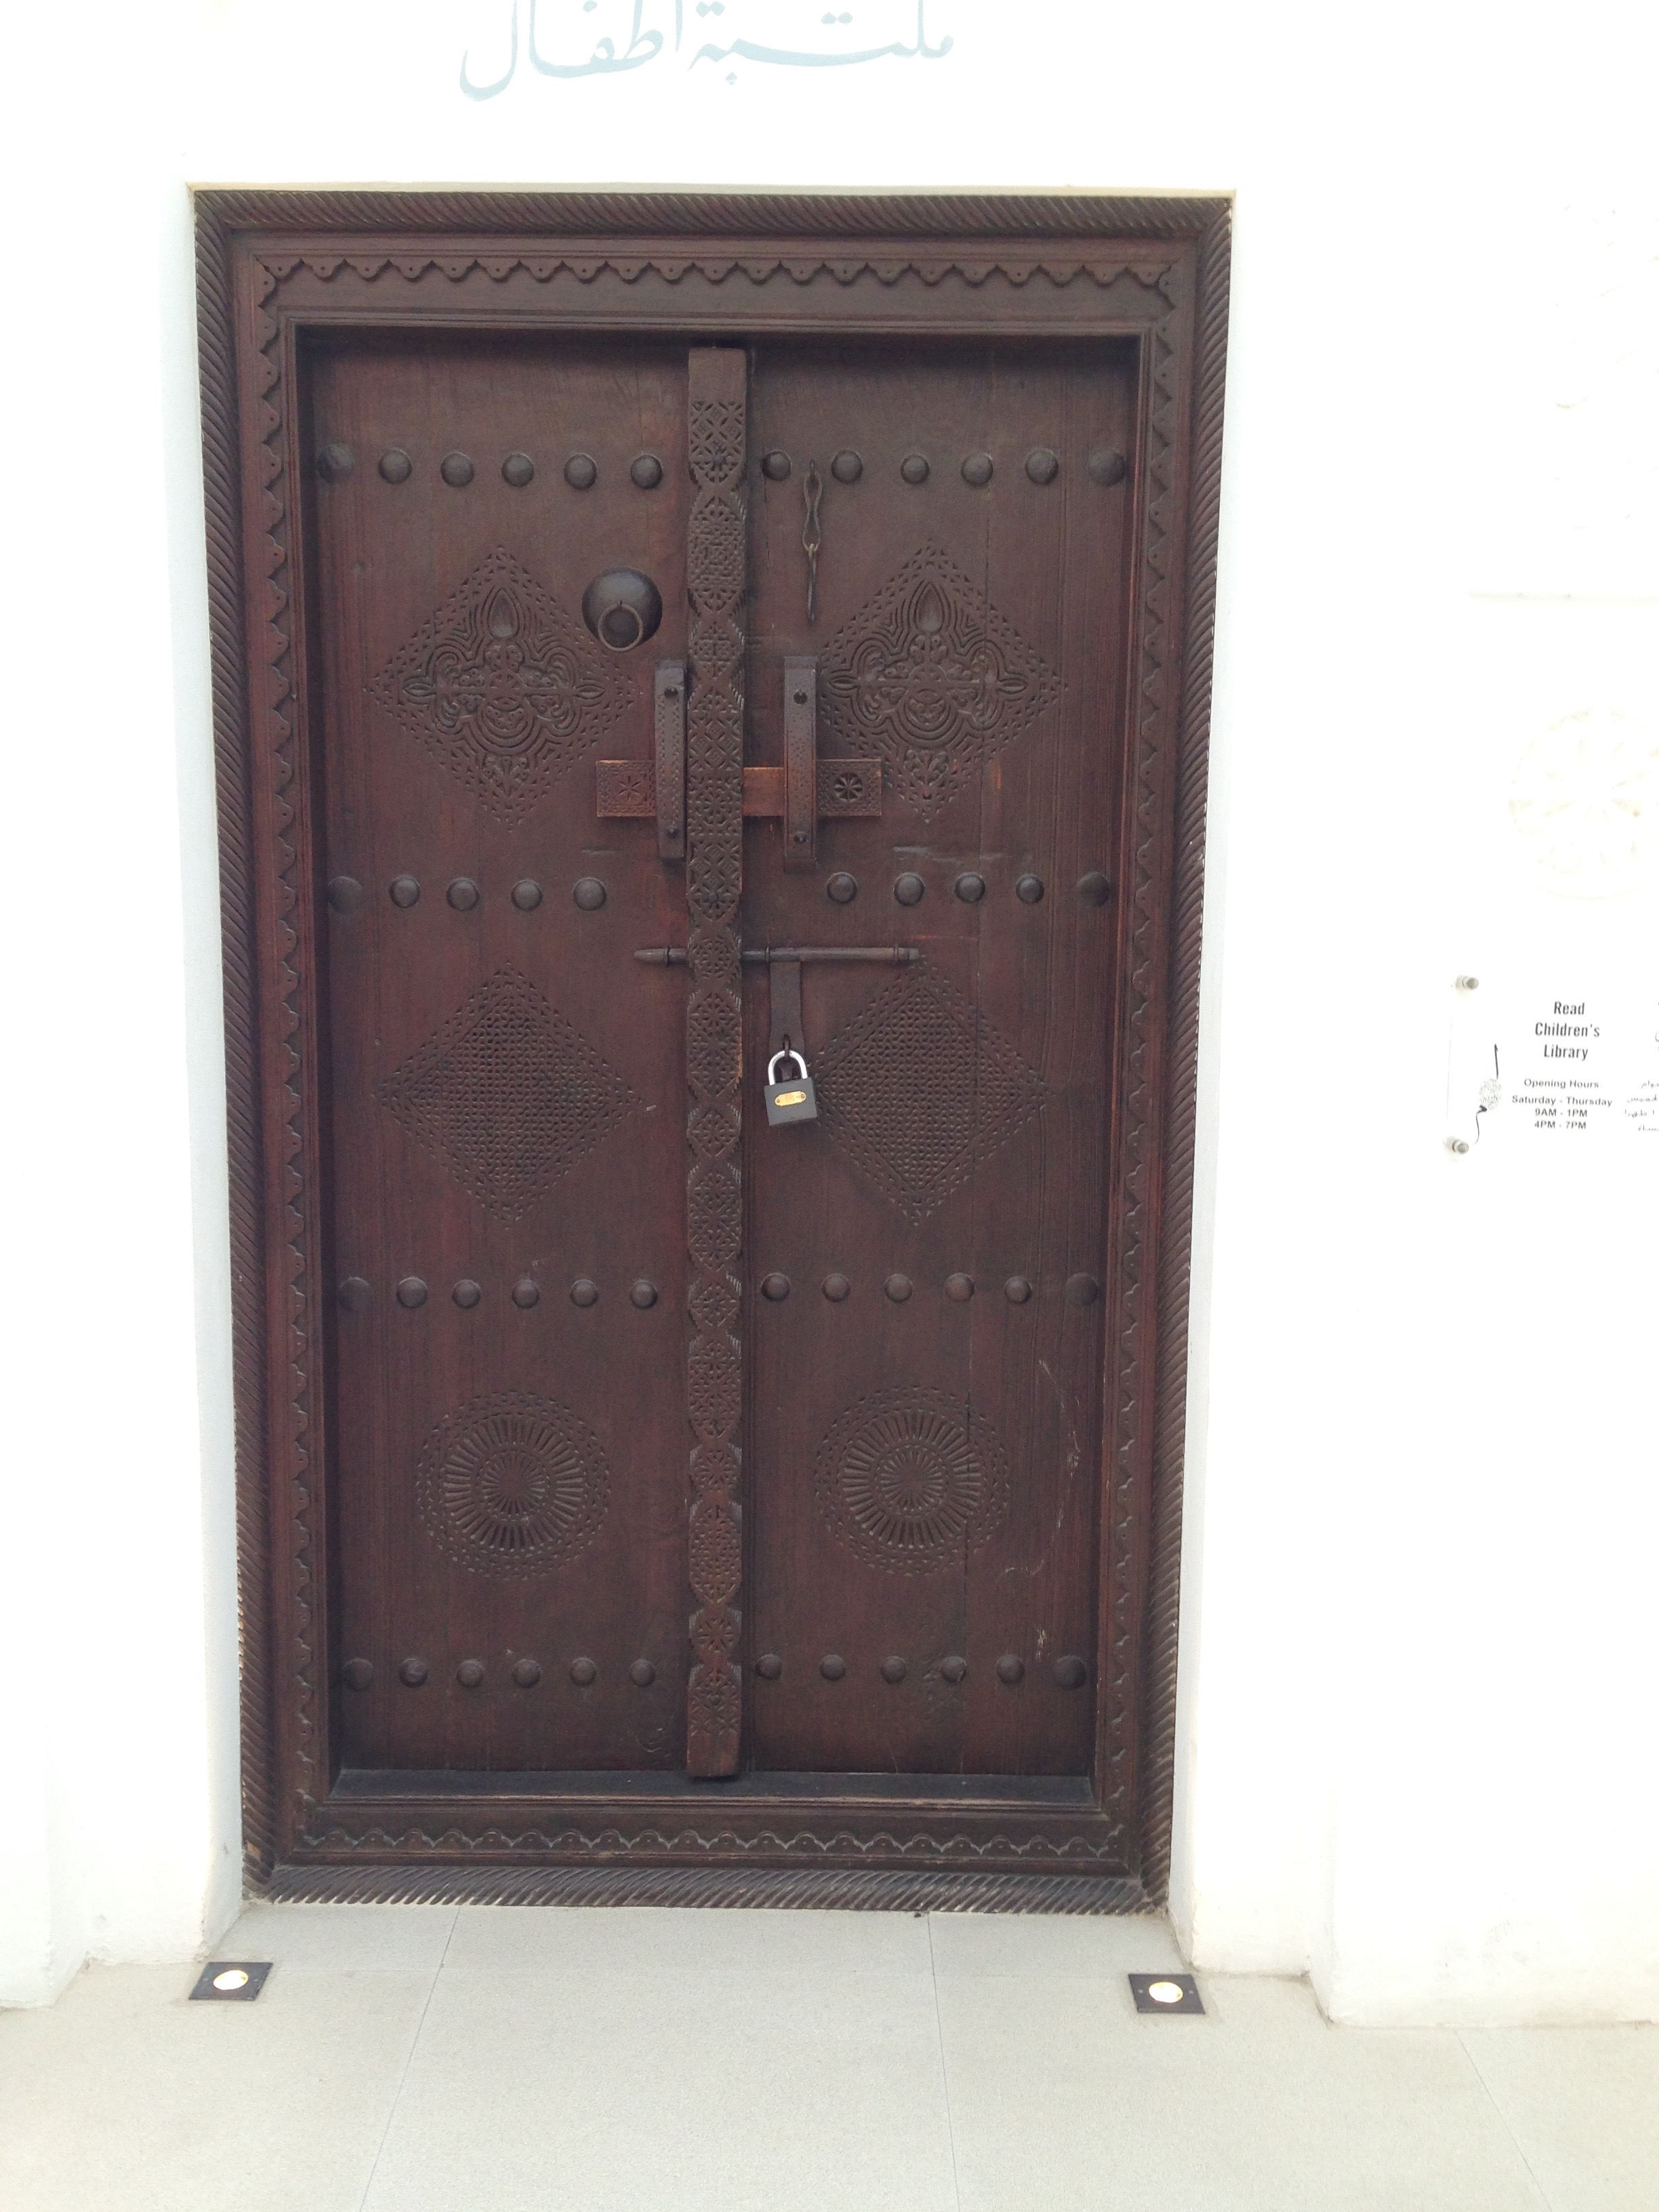 Heavy, carved wooden doors like this and the one below are typical to this style of architecture.